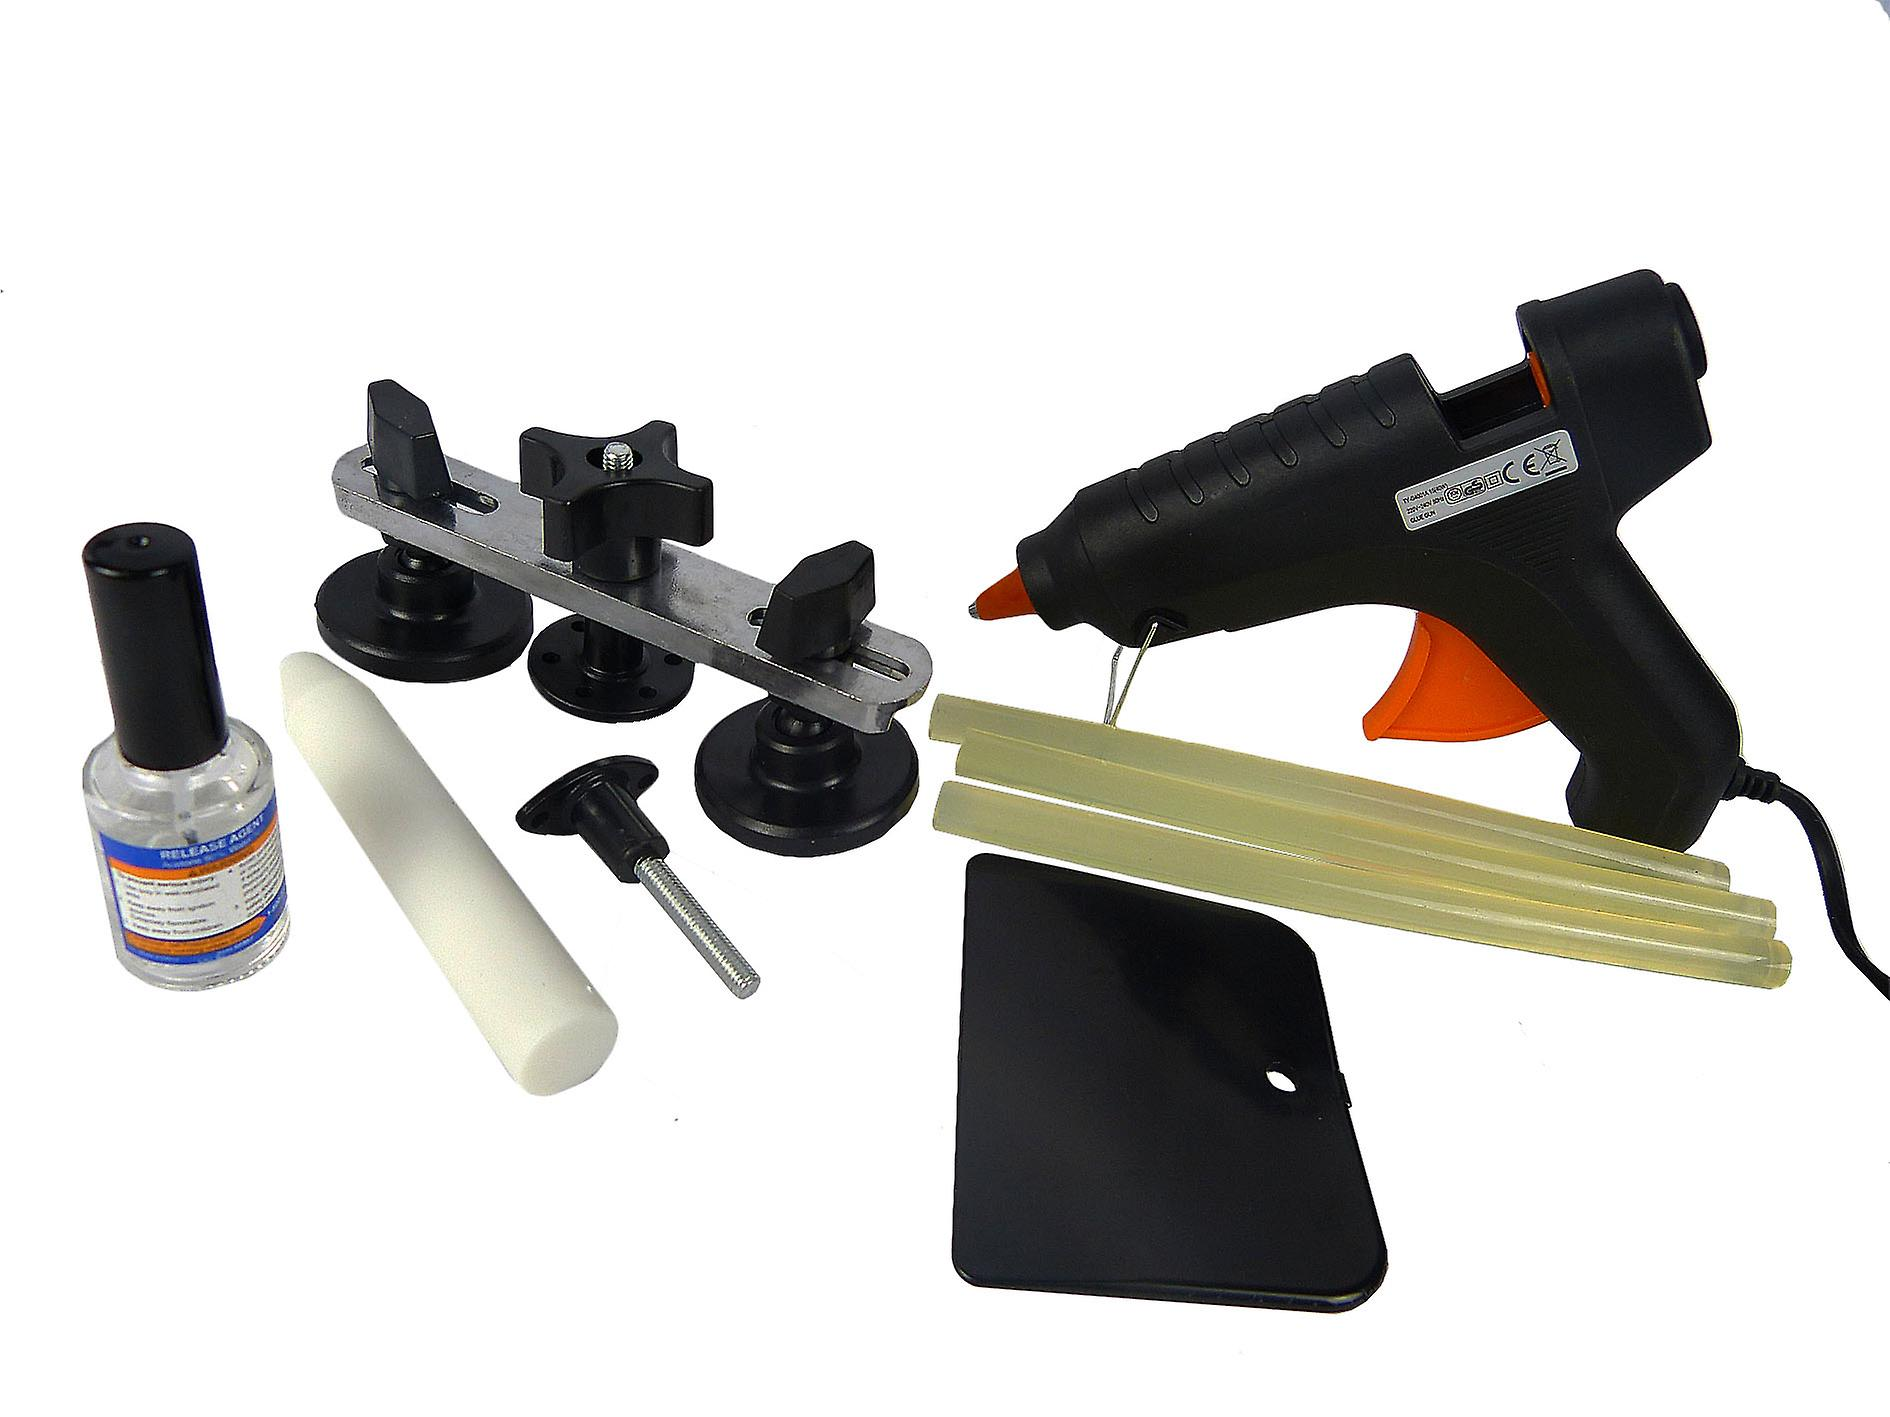 Hyfive Paintless Dent Repair Puller Kits PDR Kits Body Dent Removal Tools Dent Puller Kit Repair you vehicle at home